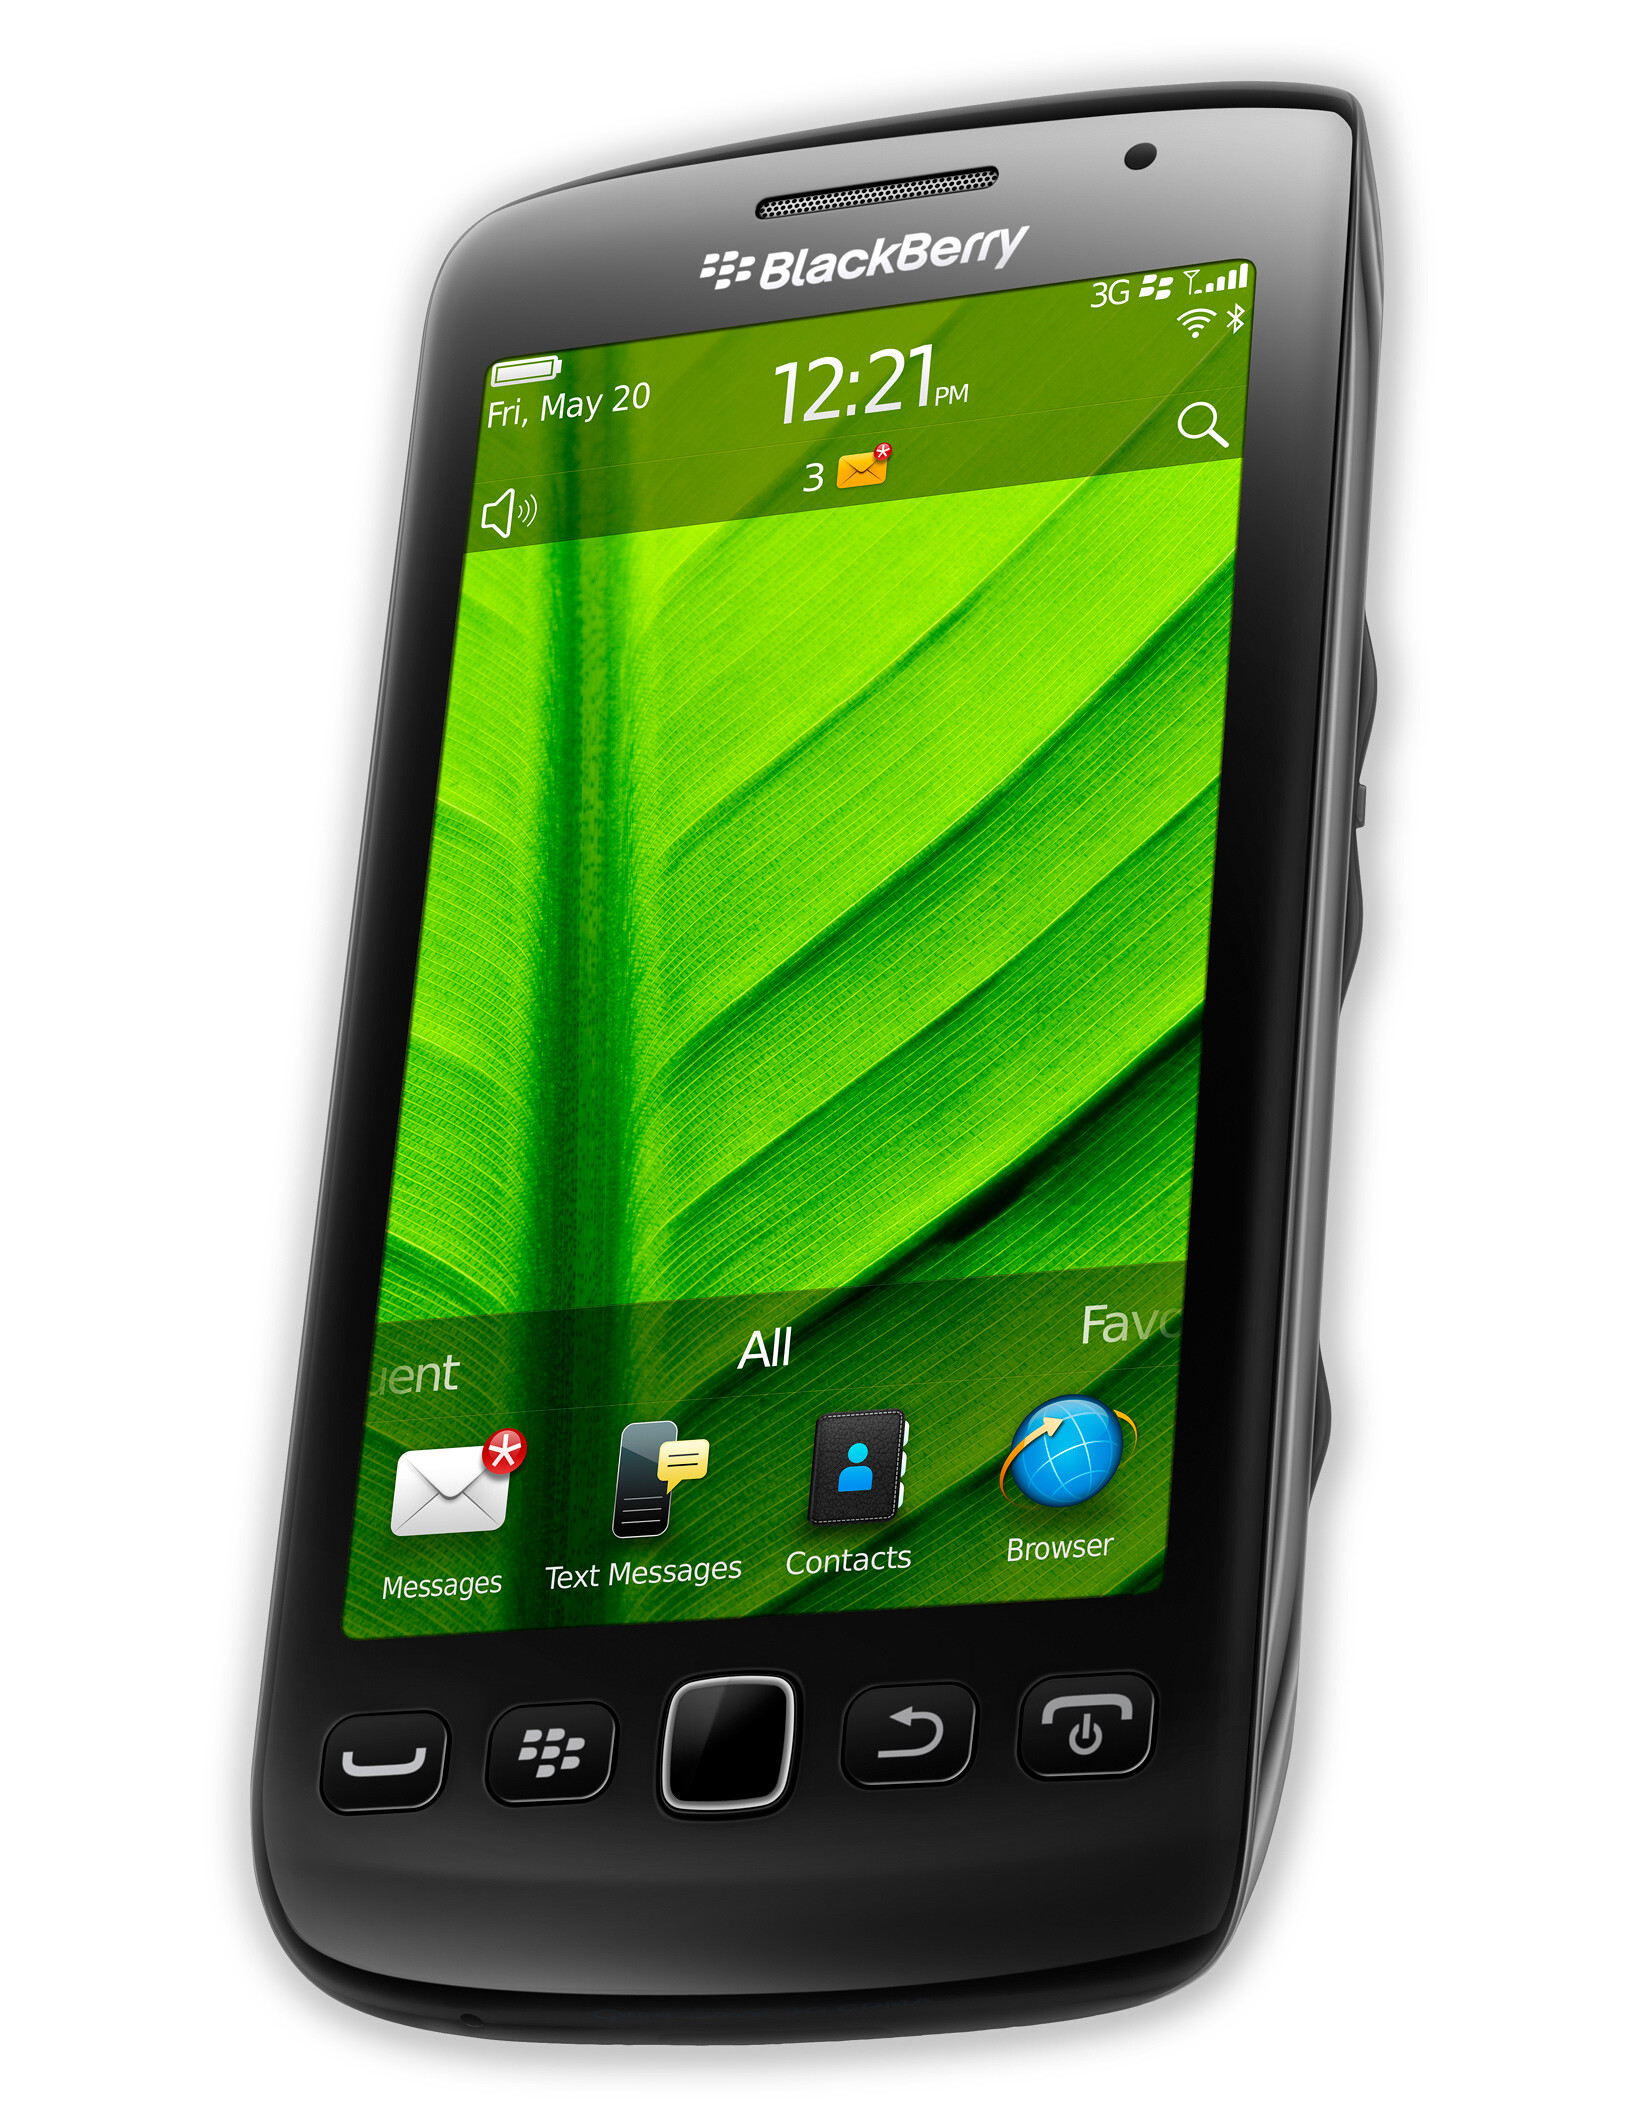 blackberry torch 9860 manual user guide manual that easy to read u2022 rh lenderdirectory co BlackBerry Curve 9300 BlackBerry Touch 9860